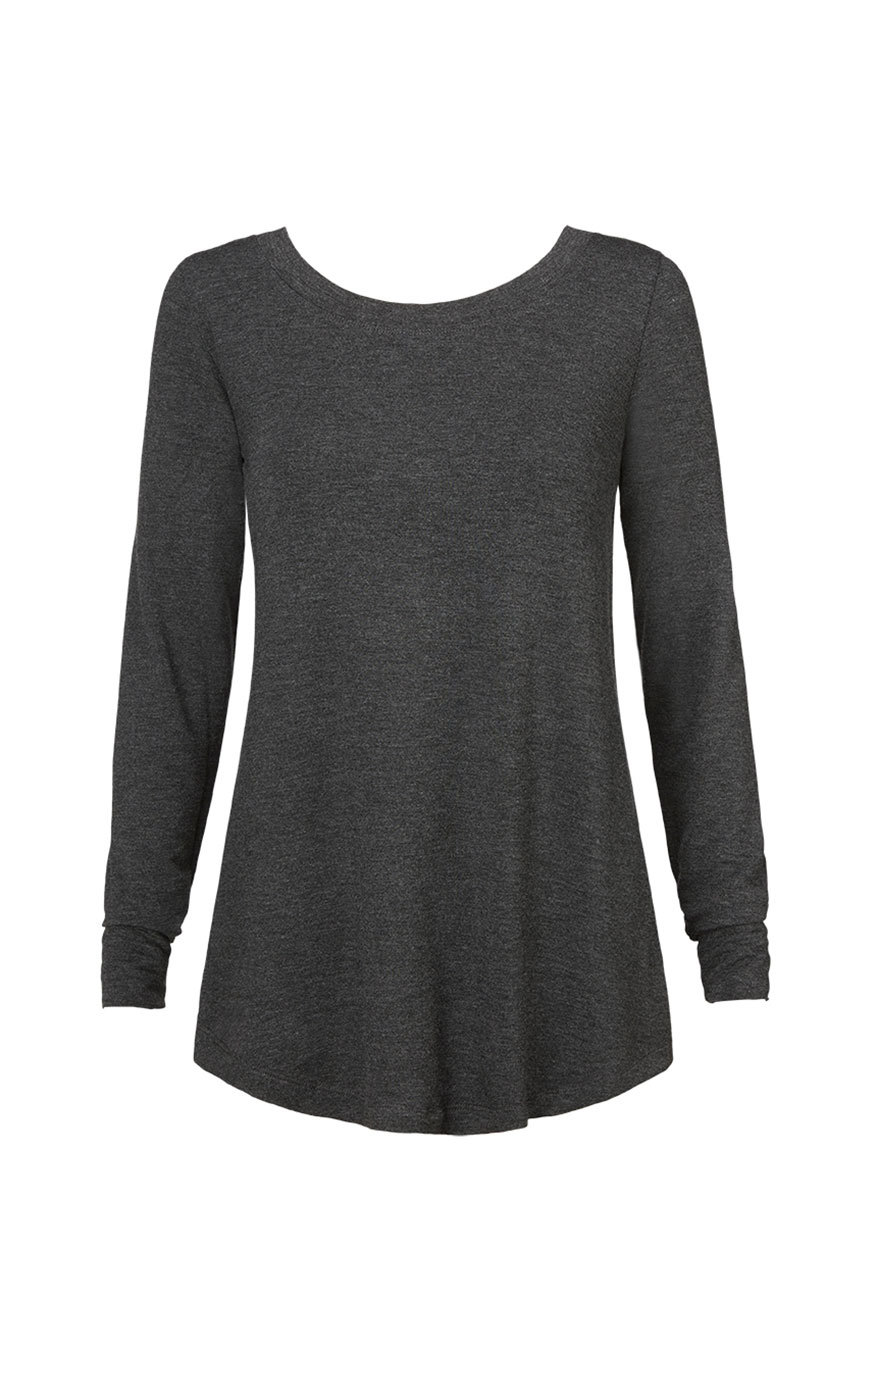 cabi's ATC Cross Back Sweatshirt